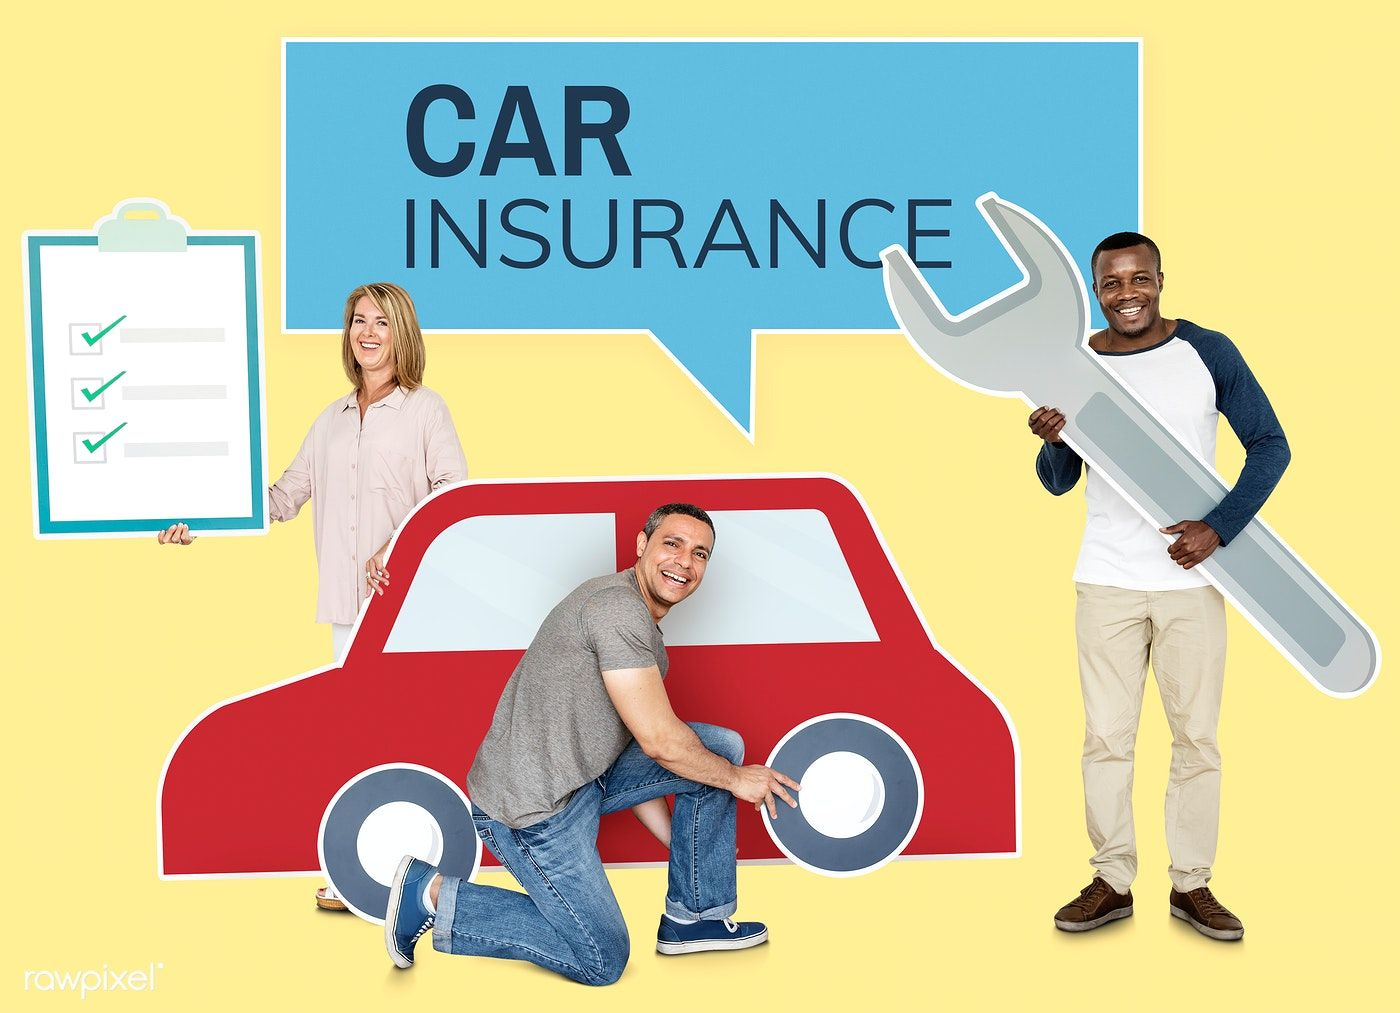 Download Premium Psd Of People With A Car Insurance Policy 468435